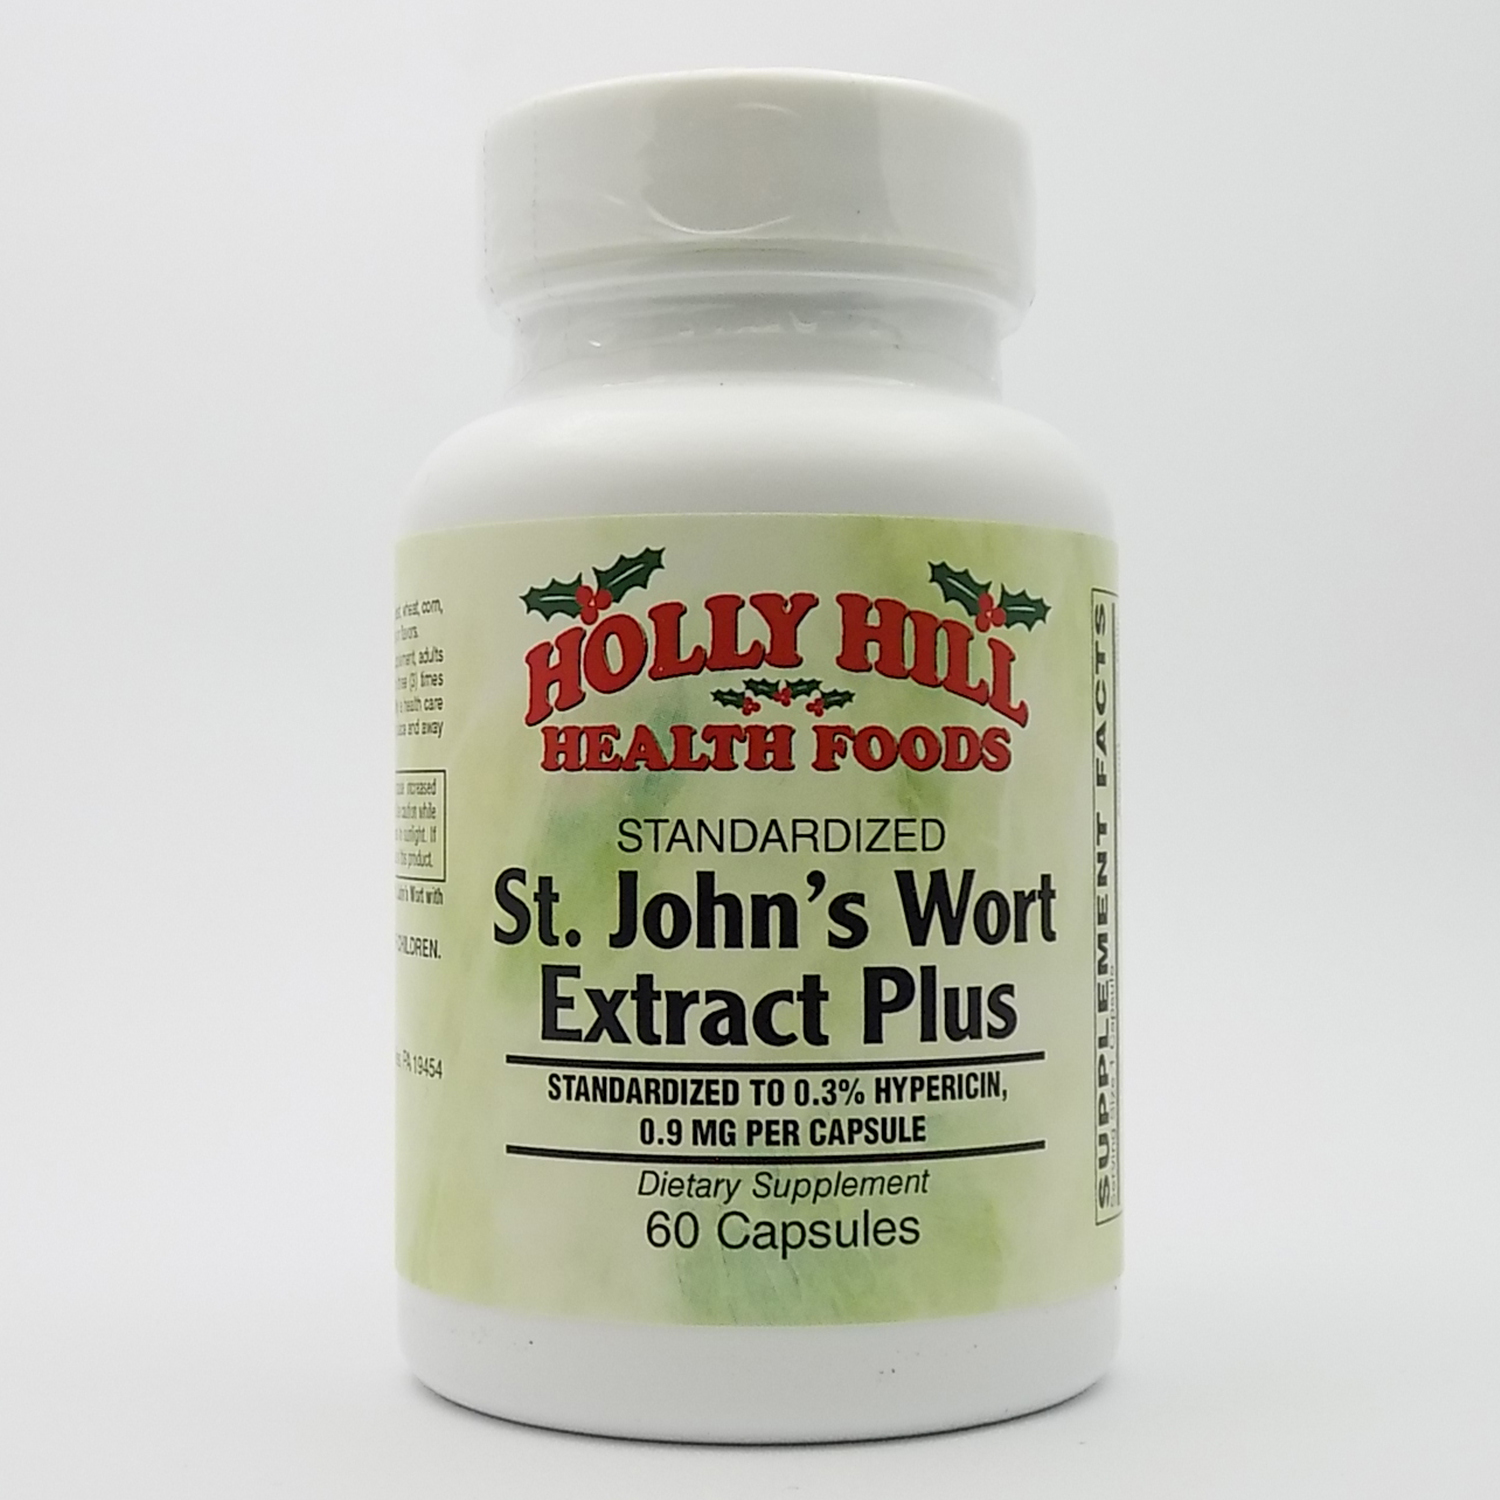 Holly Hill Health Foods, Standardized St. John's Wort Extract Plus, 60 Capsules